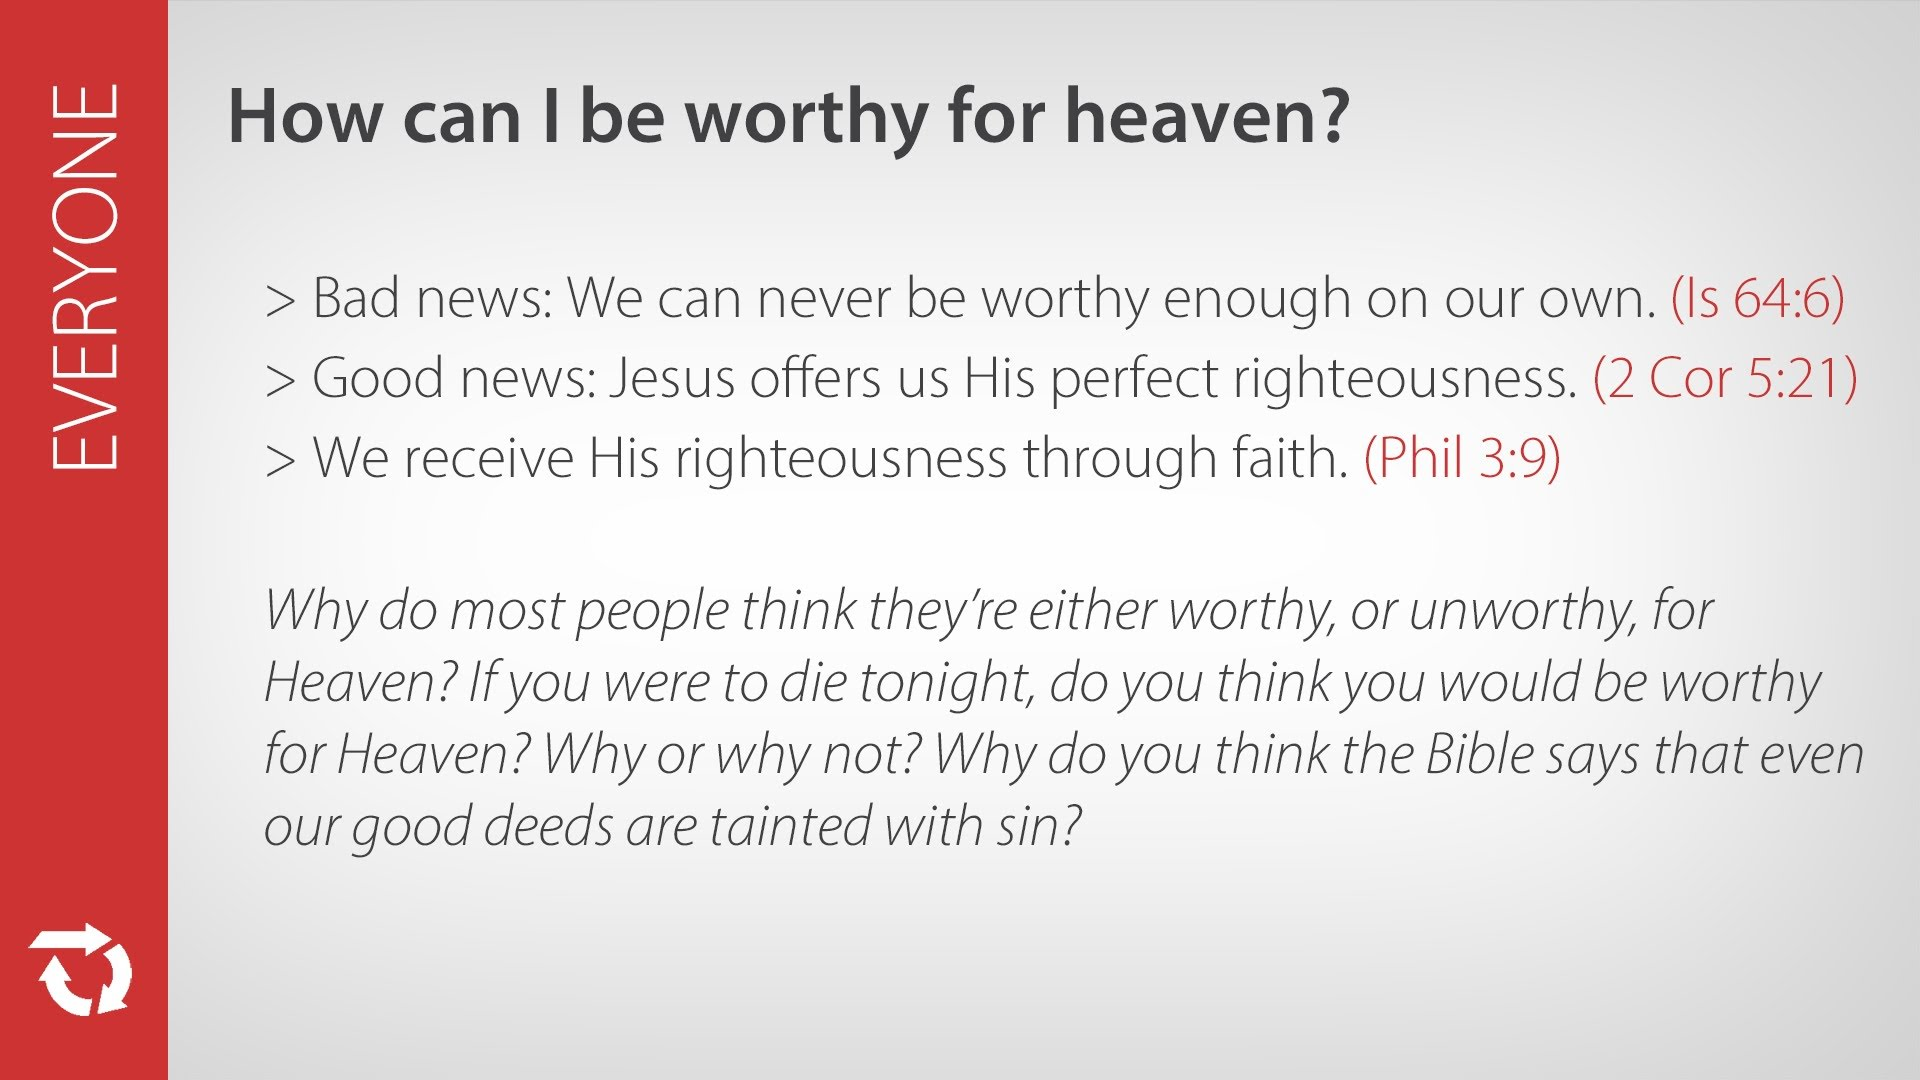 How Can I Be Worthy for Heaven?